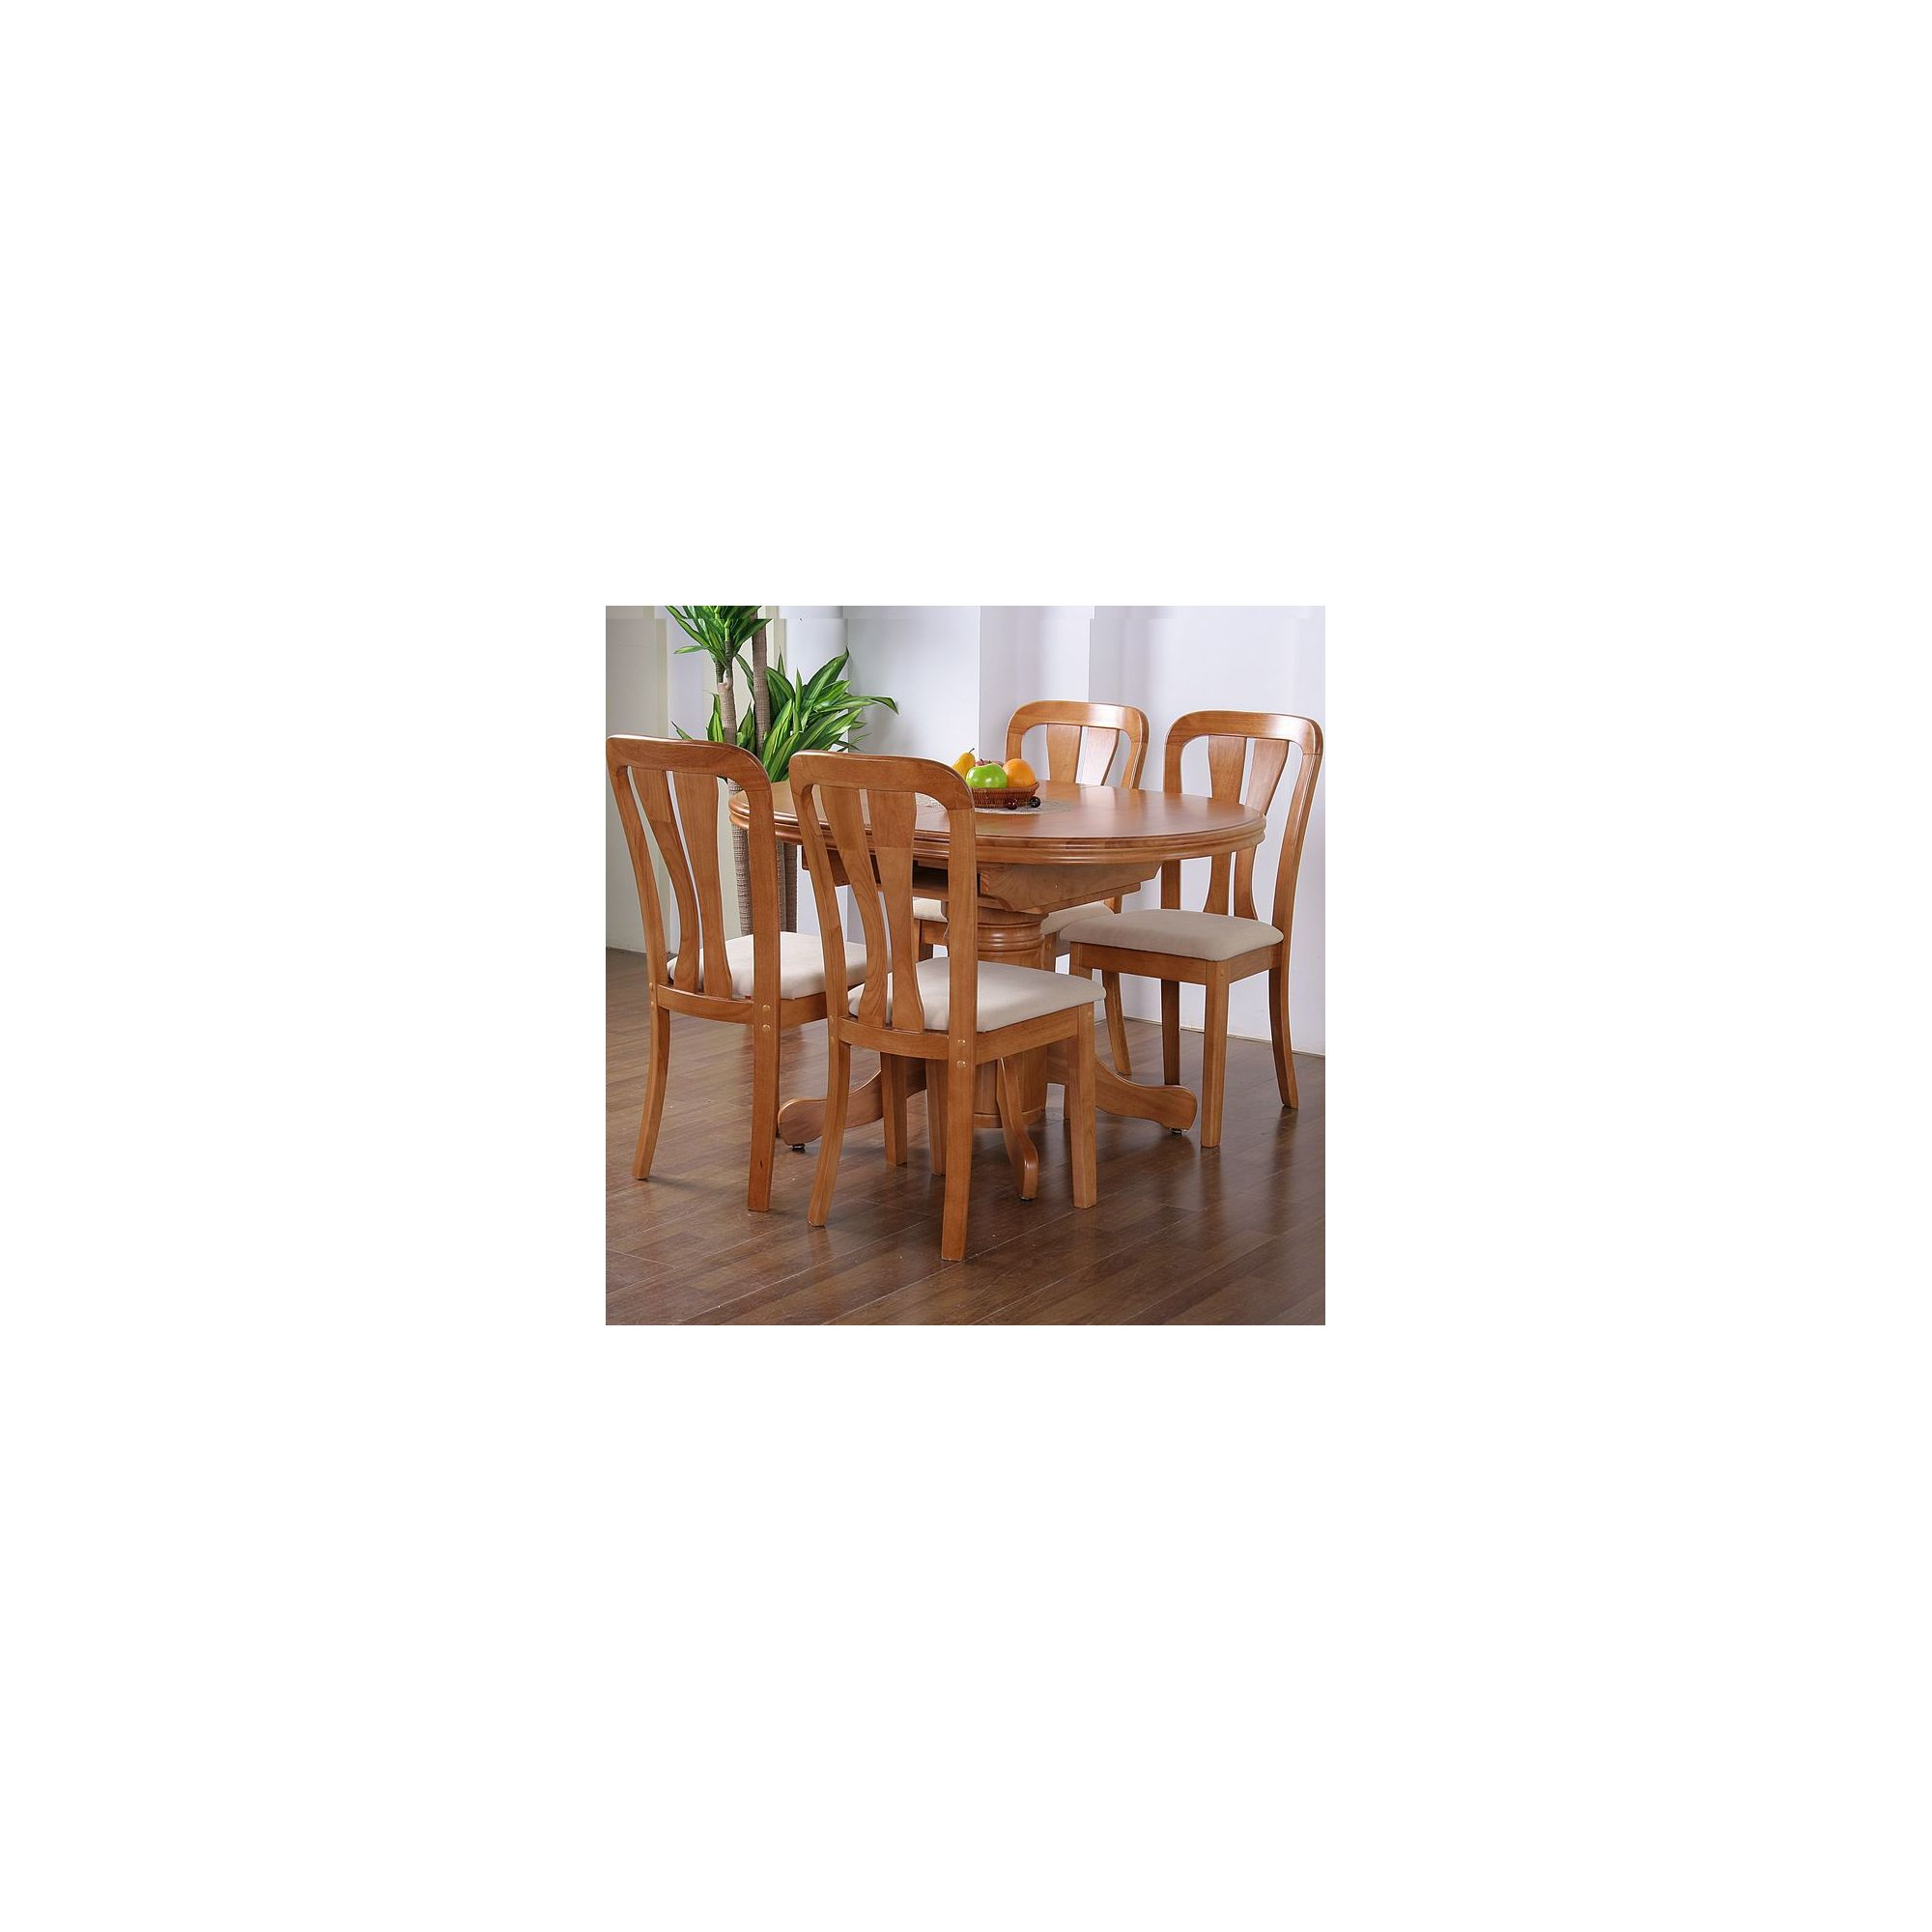 G&P Furniture Windsor House 5-Piece Stratford Oval Flip Top Extending Dining Set with Slatted Back Chair - Maple at Tesco Direct